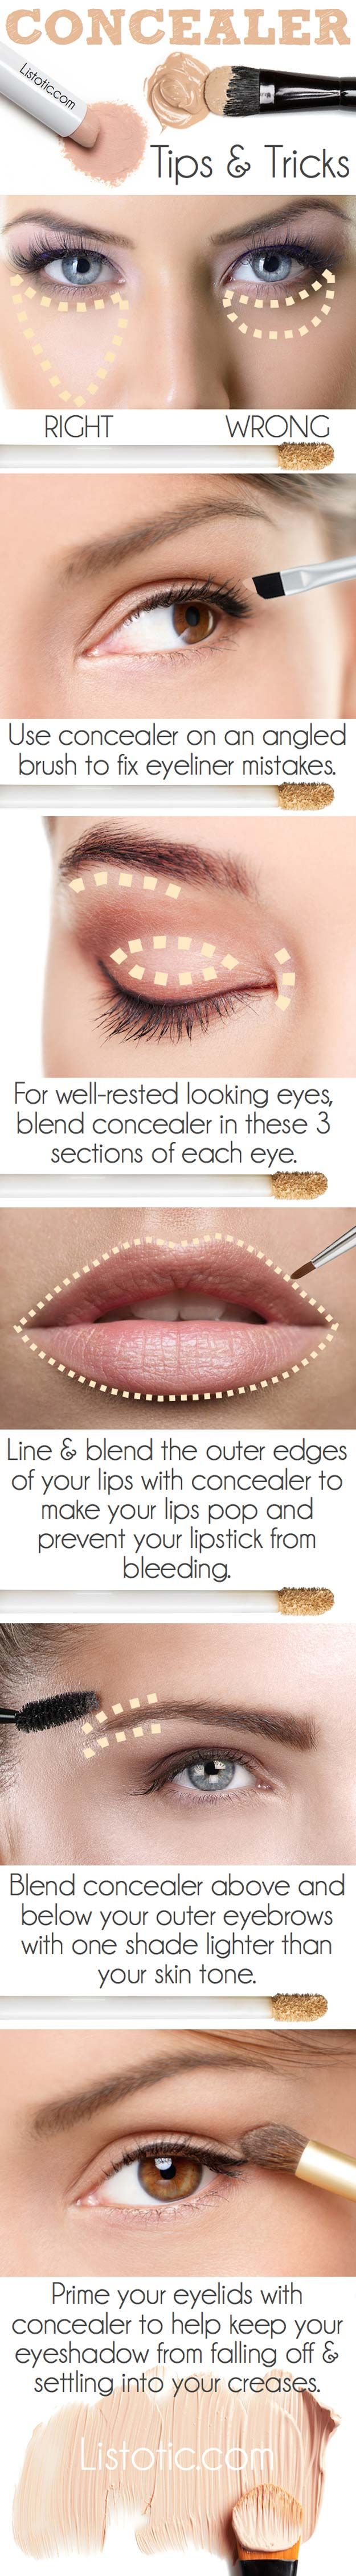 Best Beauty Hacks Ever Created - How to Use Concealer - Tips And Tricks For Skin Care, Make Up, Style, And Products Every Girl Should Try At Least Once In Life. Easy, Cute, Step By Step Tutorials - http://thegoddess.com/best-beauty-hacks-ever